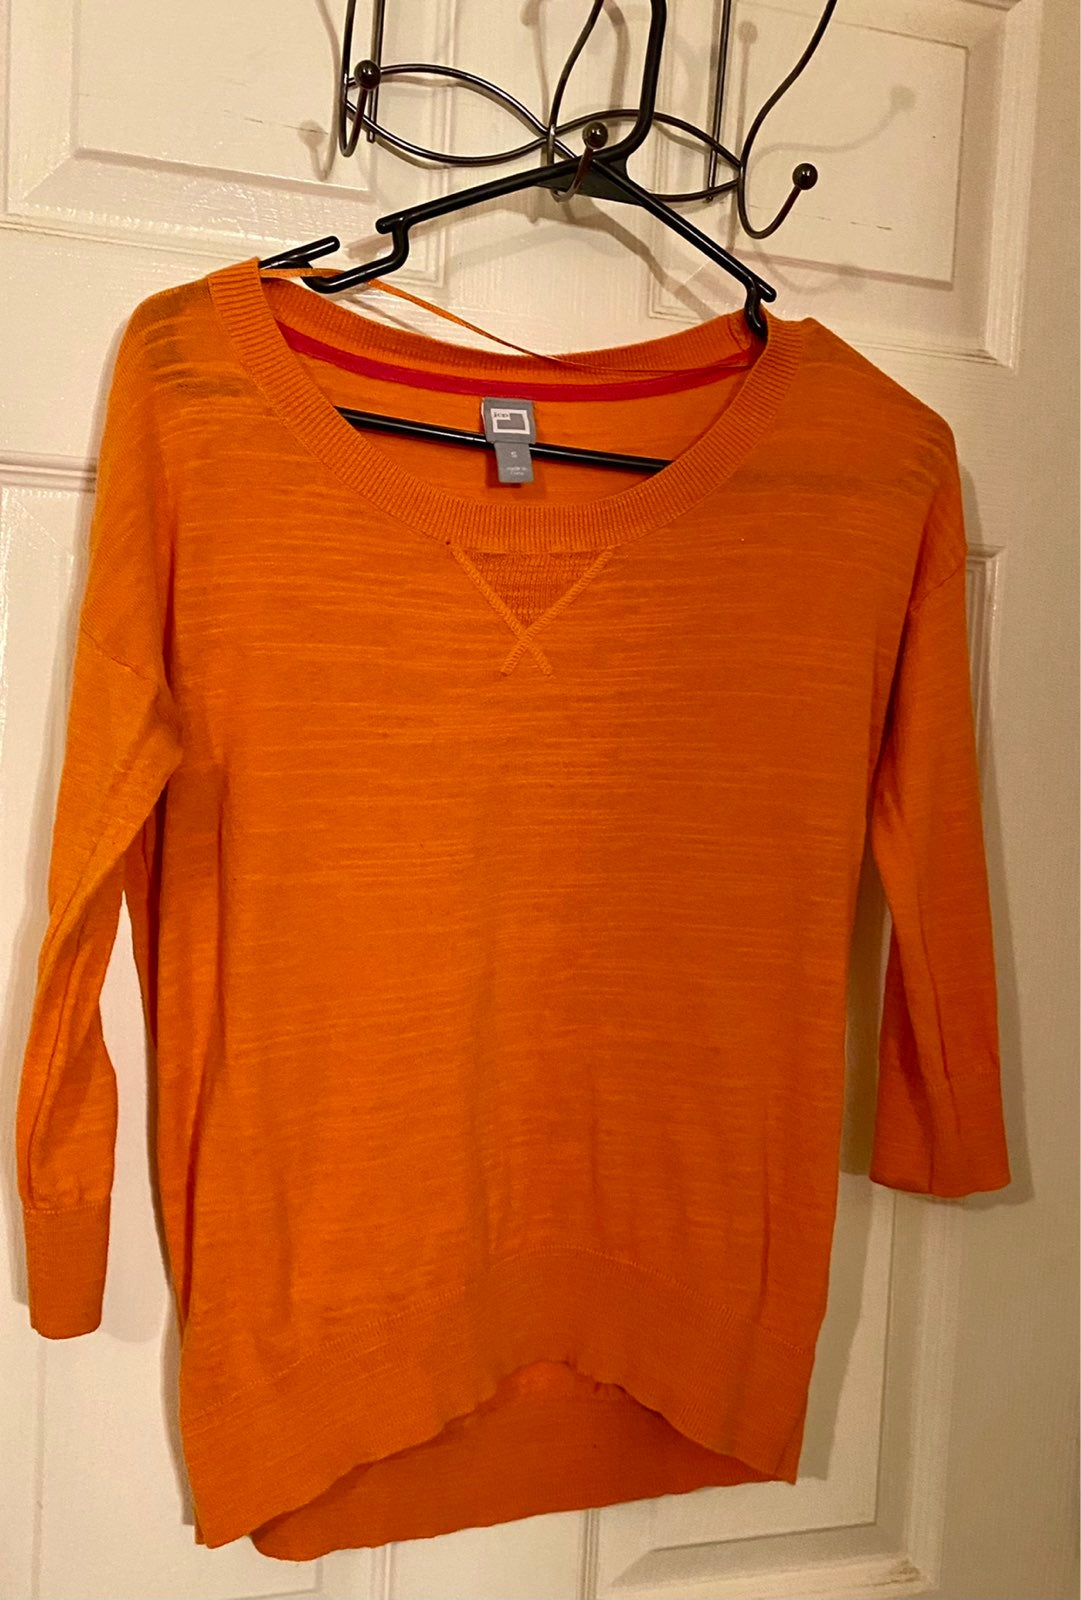 Orange/ tangerine half sleeve top